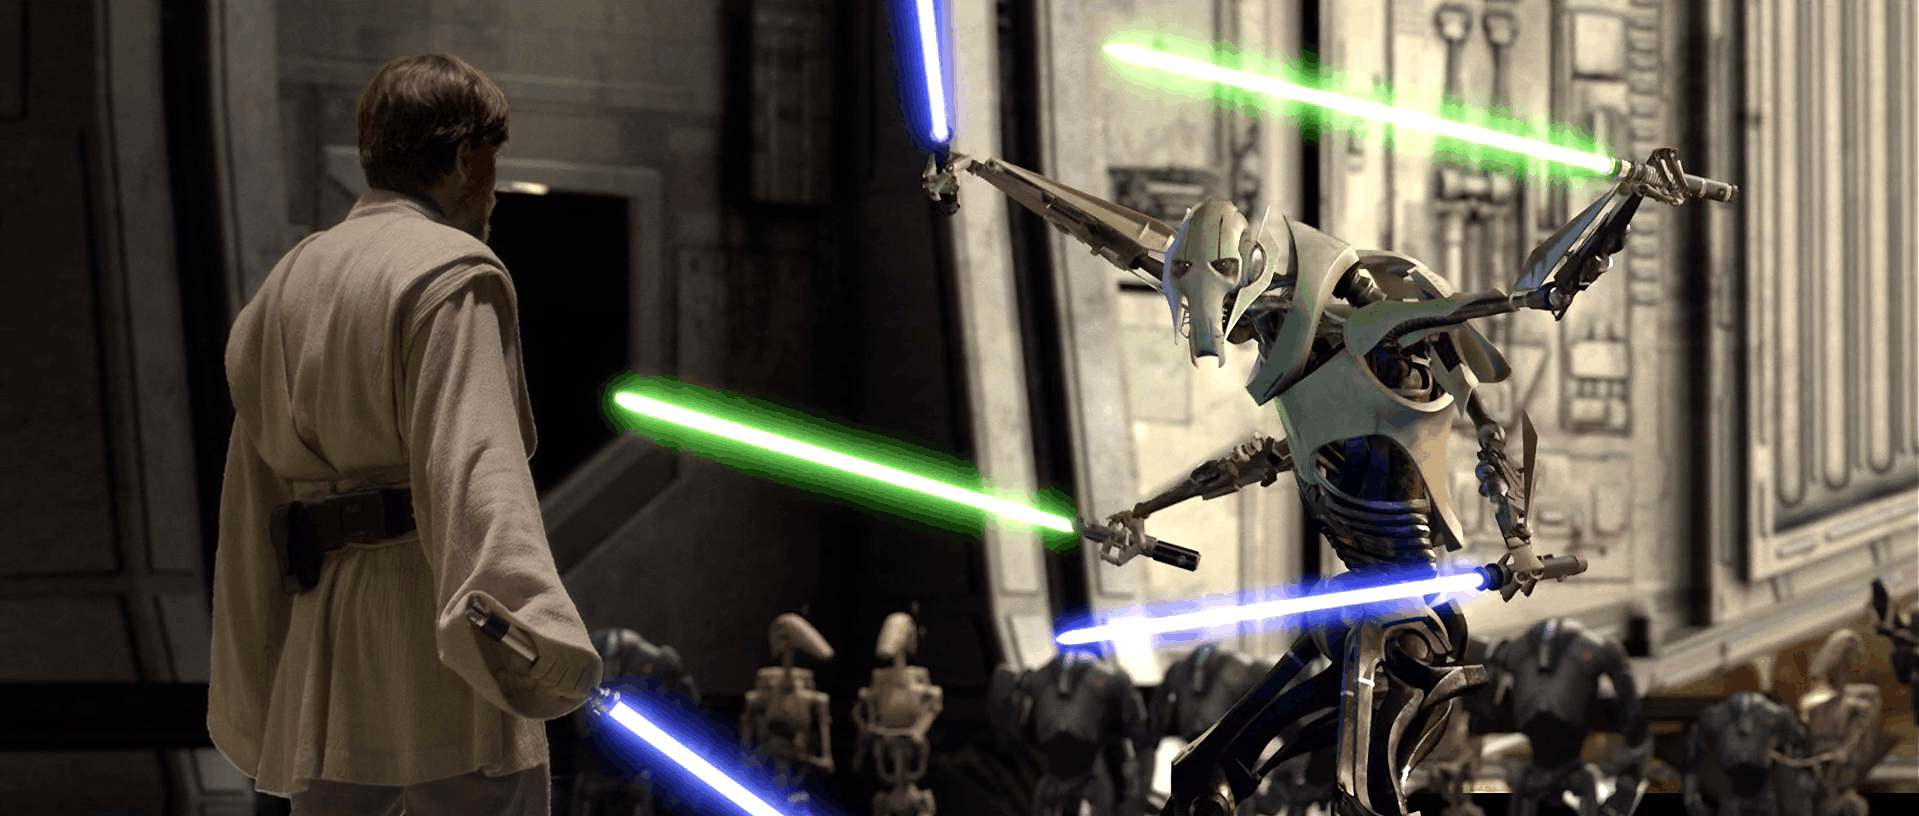 Revenge of the bricks! Recreate Obi-Wan Kenobi's epic battle with General Grievous